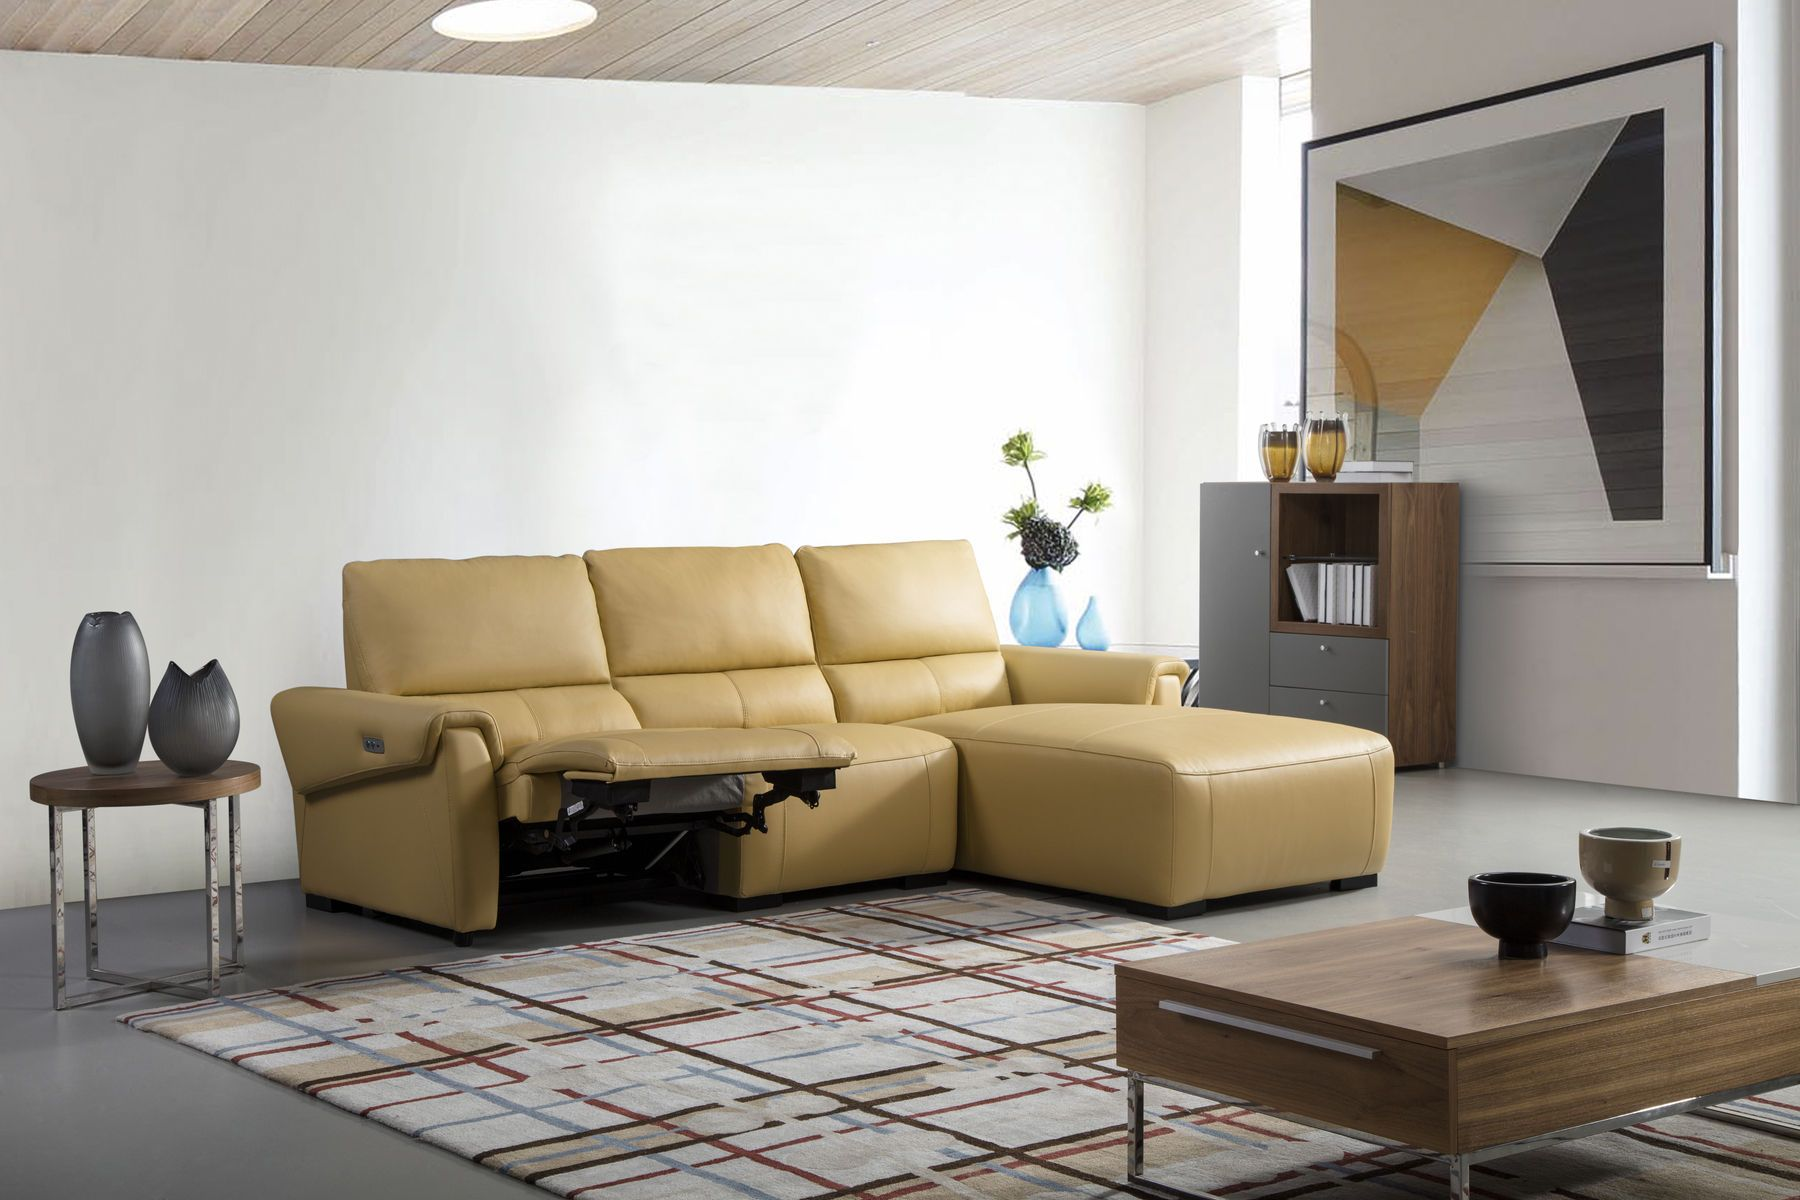 Beverly Hills Bh275 Rf Electric Recliner Mustard Leather Sectional